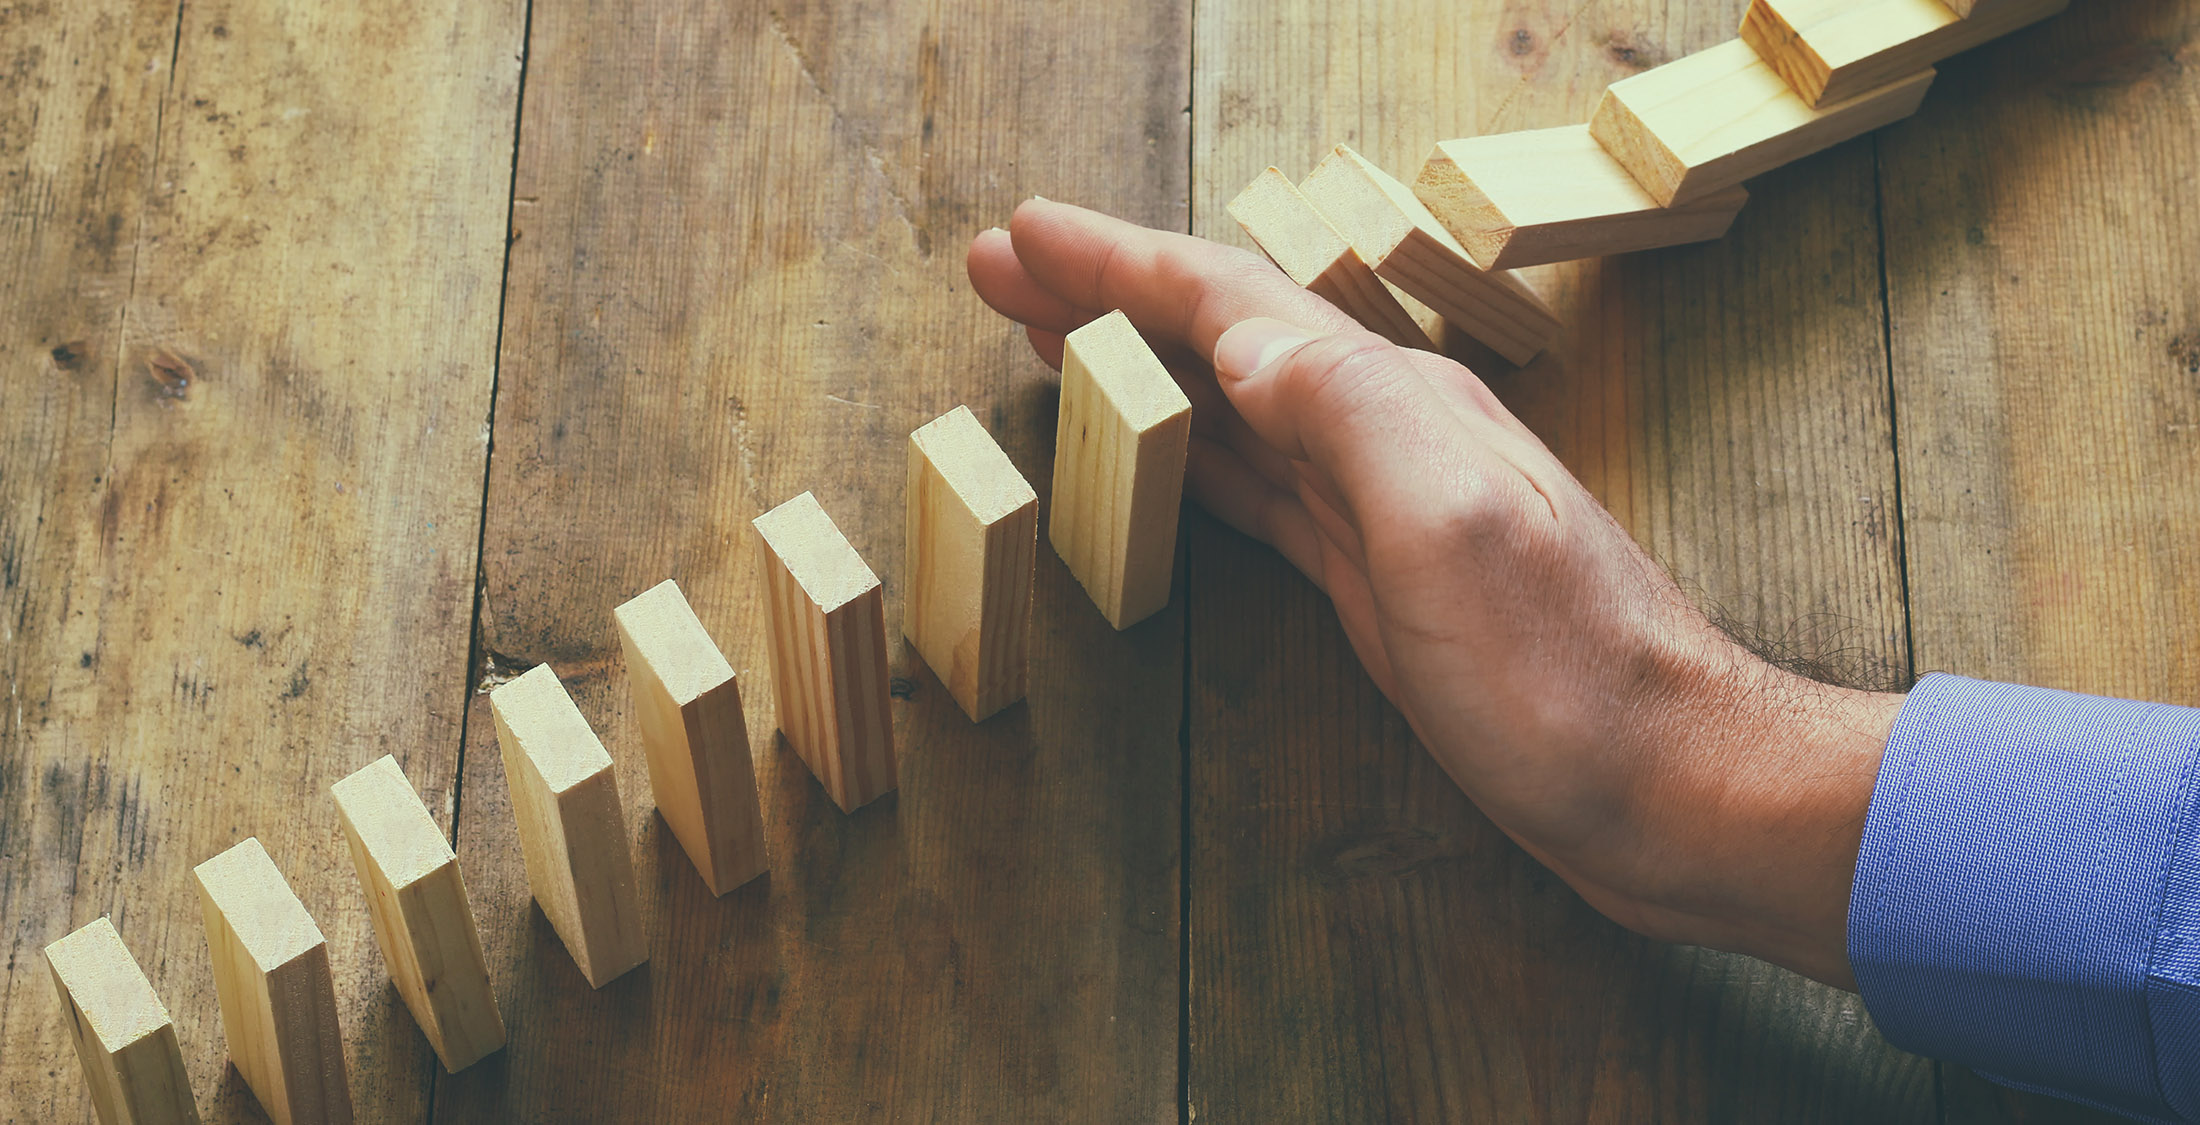 hand blocking row of wooden blocks from falling